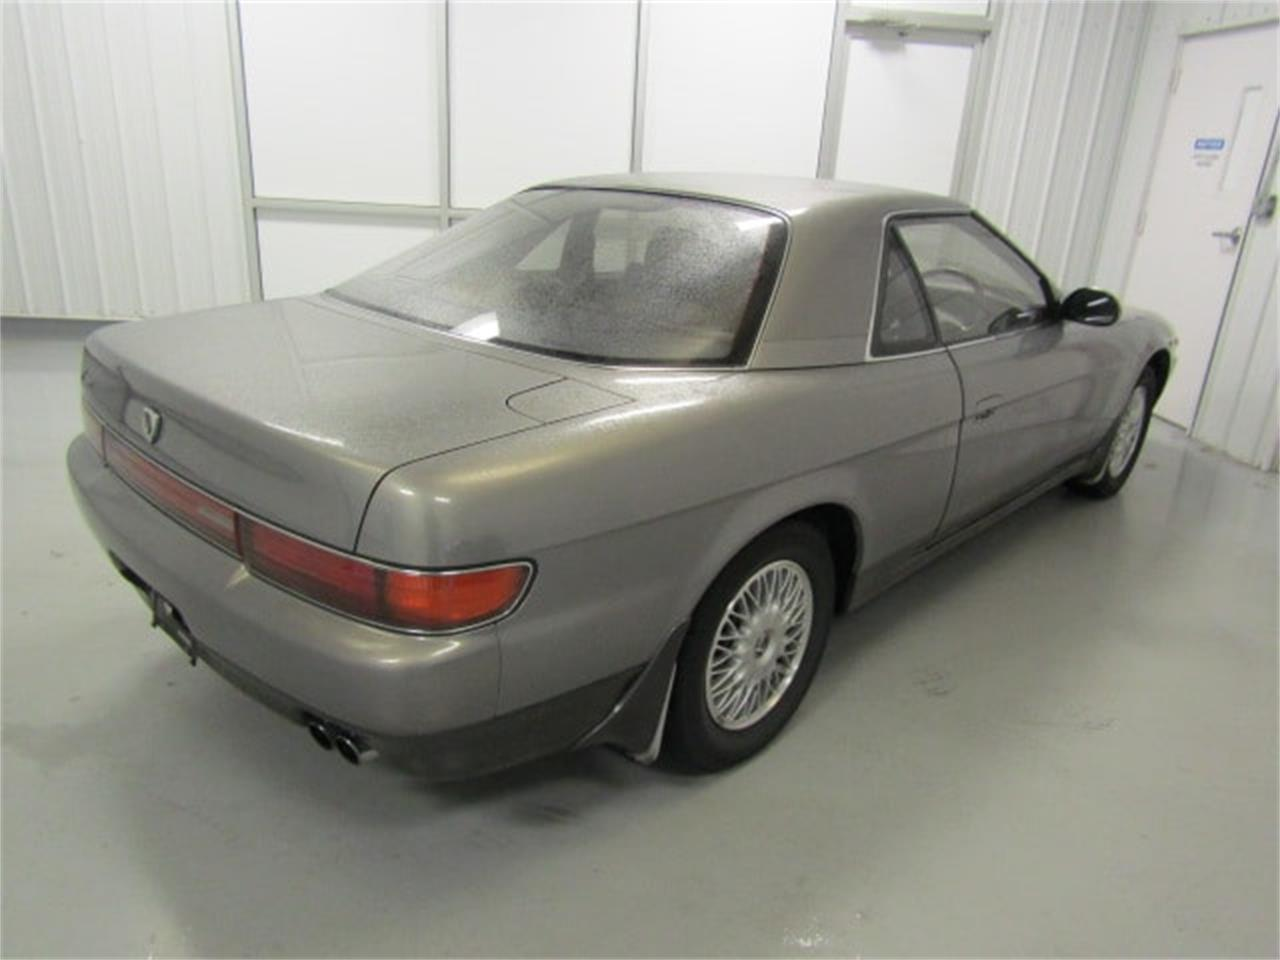 Large Picture of 1992 Eunos Cosmo located in Christiansburg Virginia - LVD1